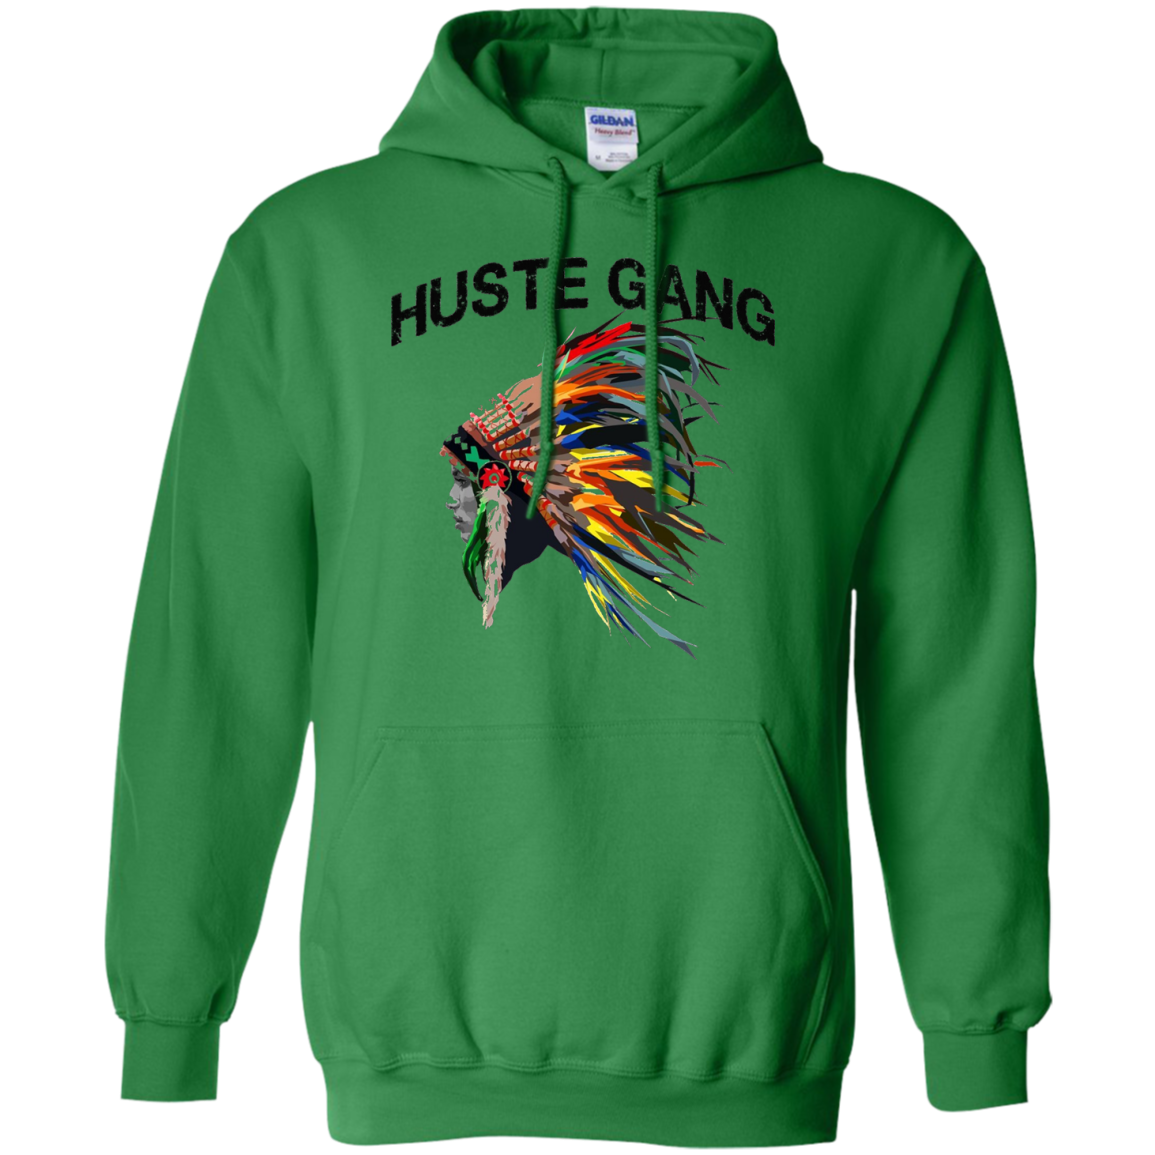 Hustle gang t shirt